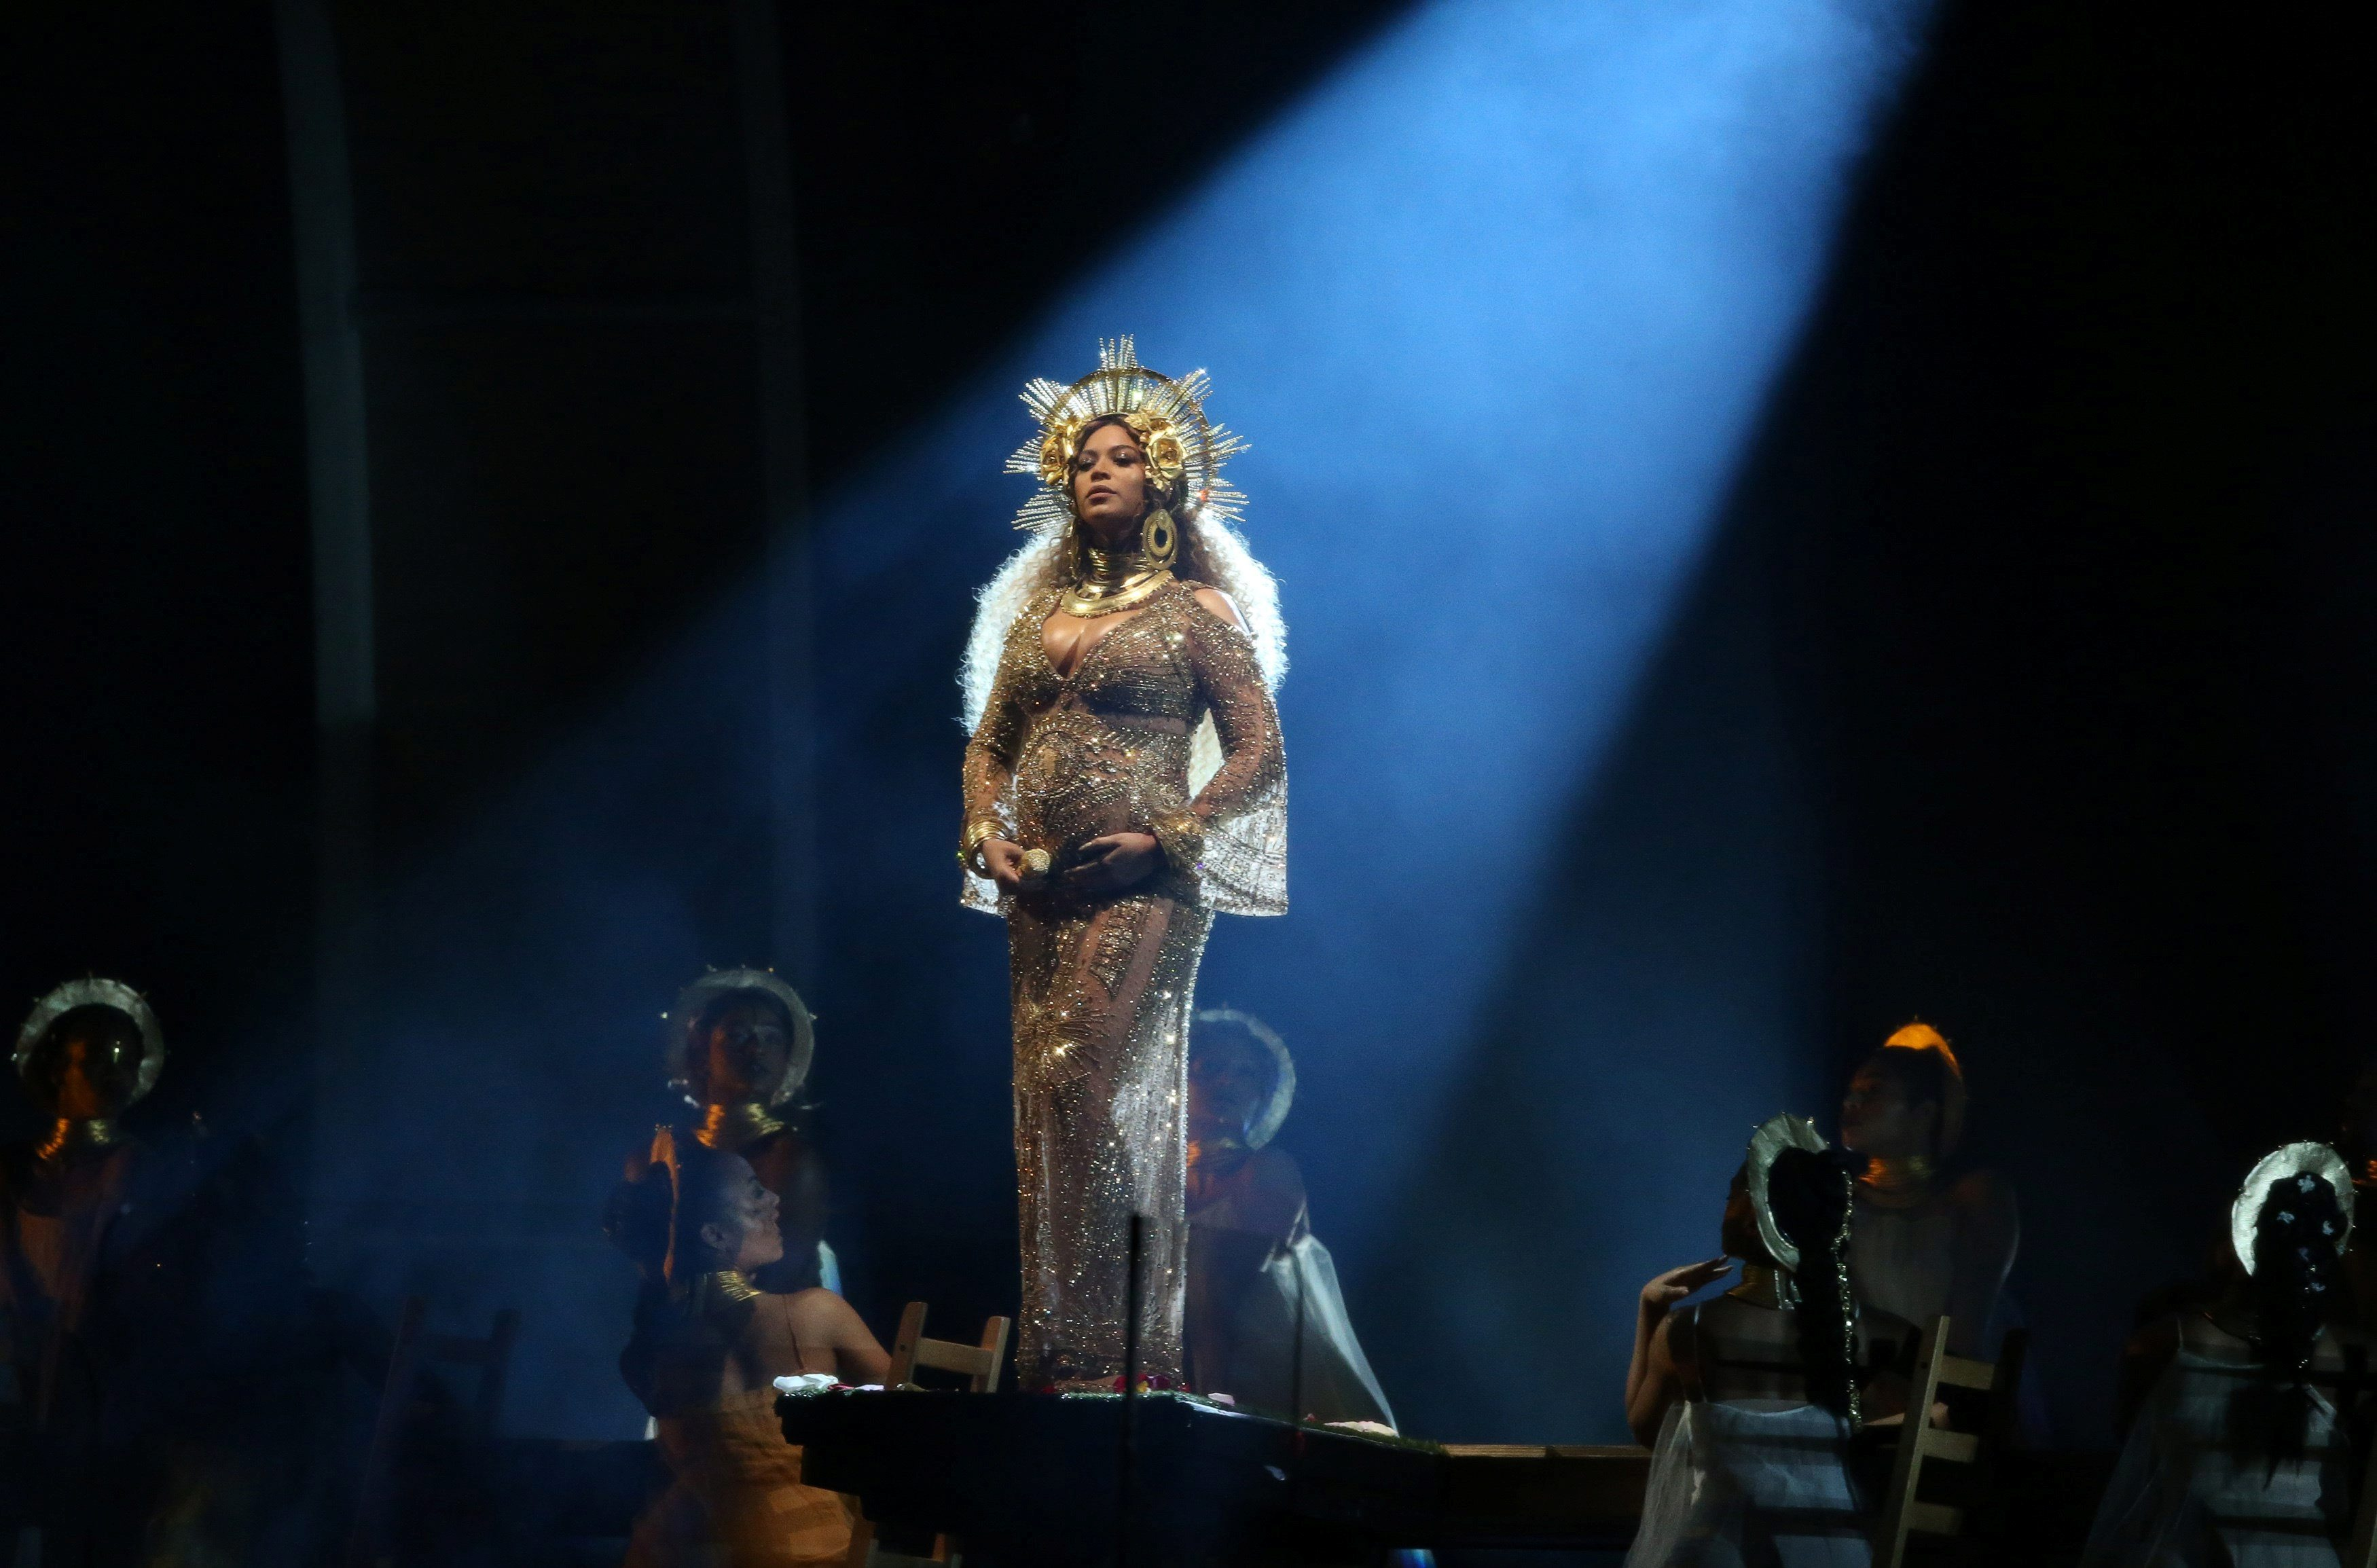 Beyonce performs at the 59th Annual Grammy Awards in Los Angeles, California, U.S. , February 12, 2017. REUTERS/Lucy Nicholson     TPX IMAGES OF THE DAY